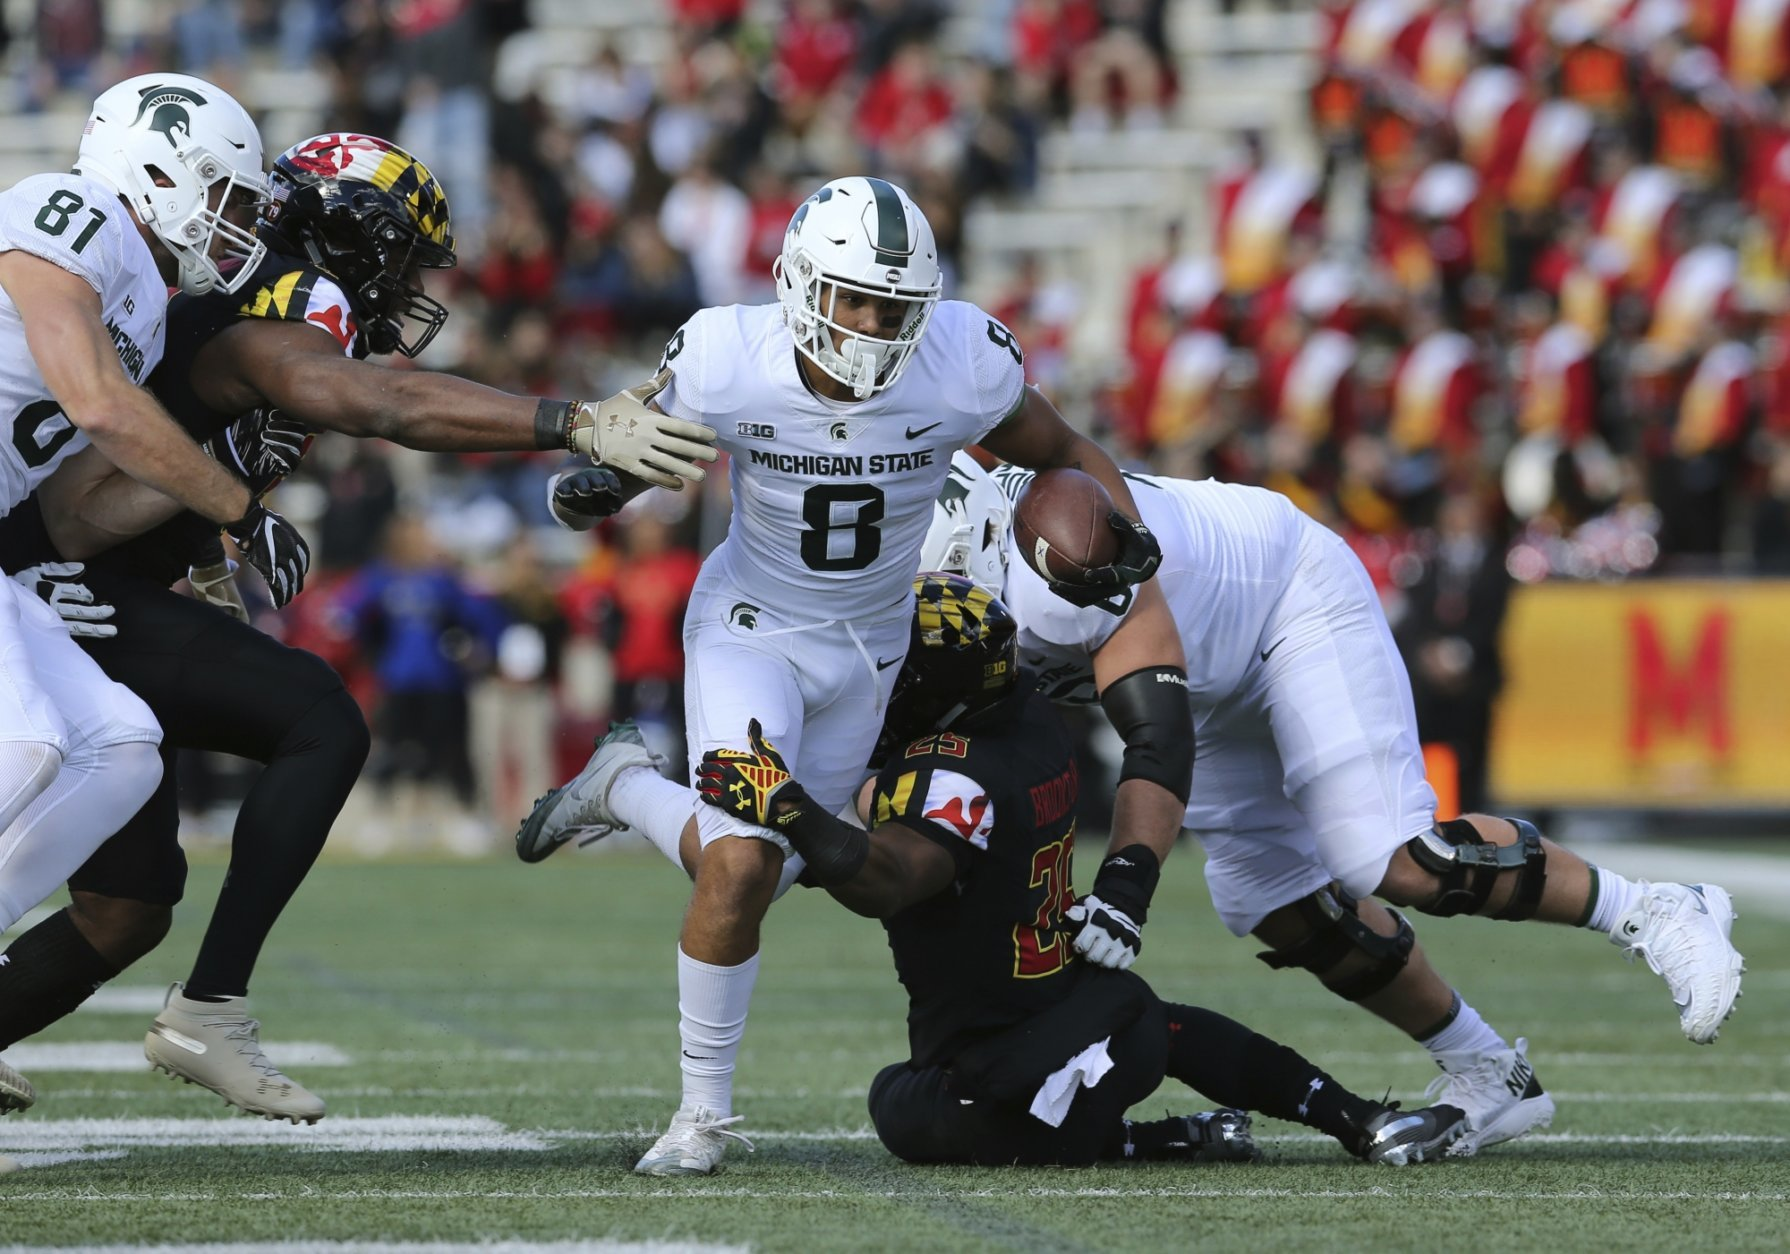 Michigan State receiver Jalen Nailor (8) runs for yardage against Maryland in the first half of an NCAA college football game, Saturday, Nov. 3, 2018, in College Park, Md. (AP Photo/Gary Cameron)